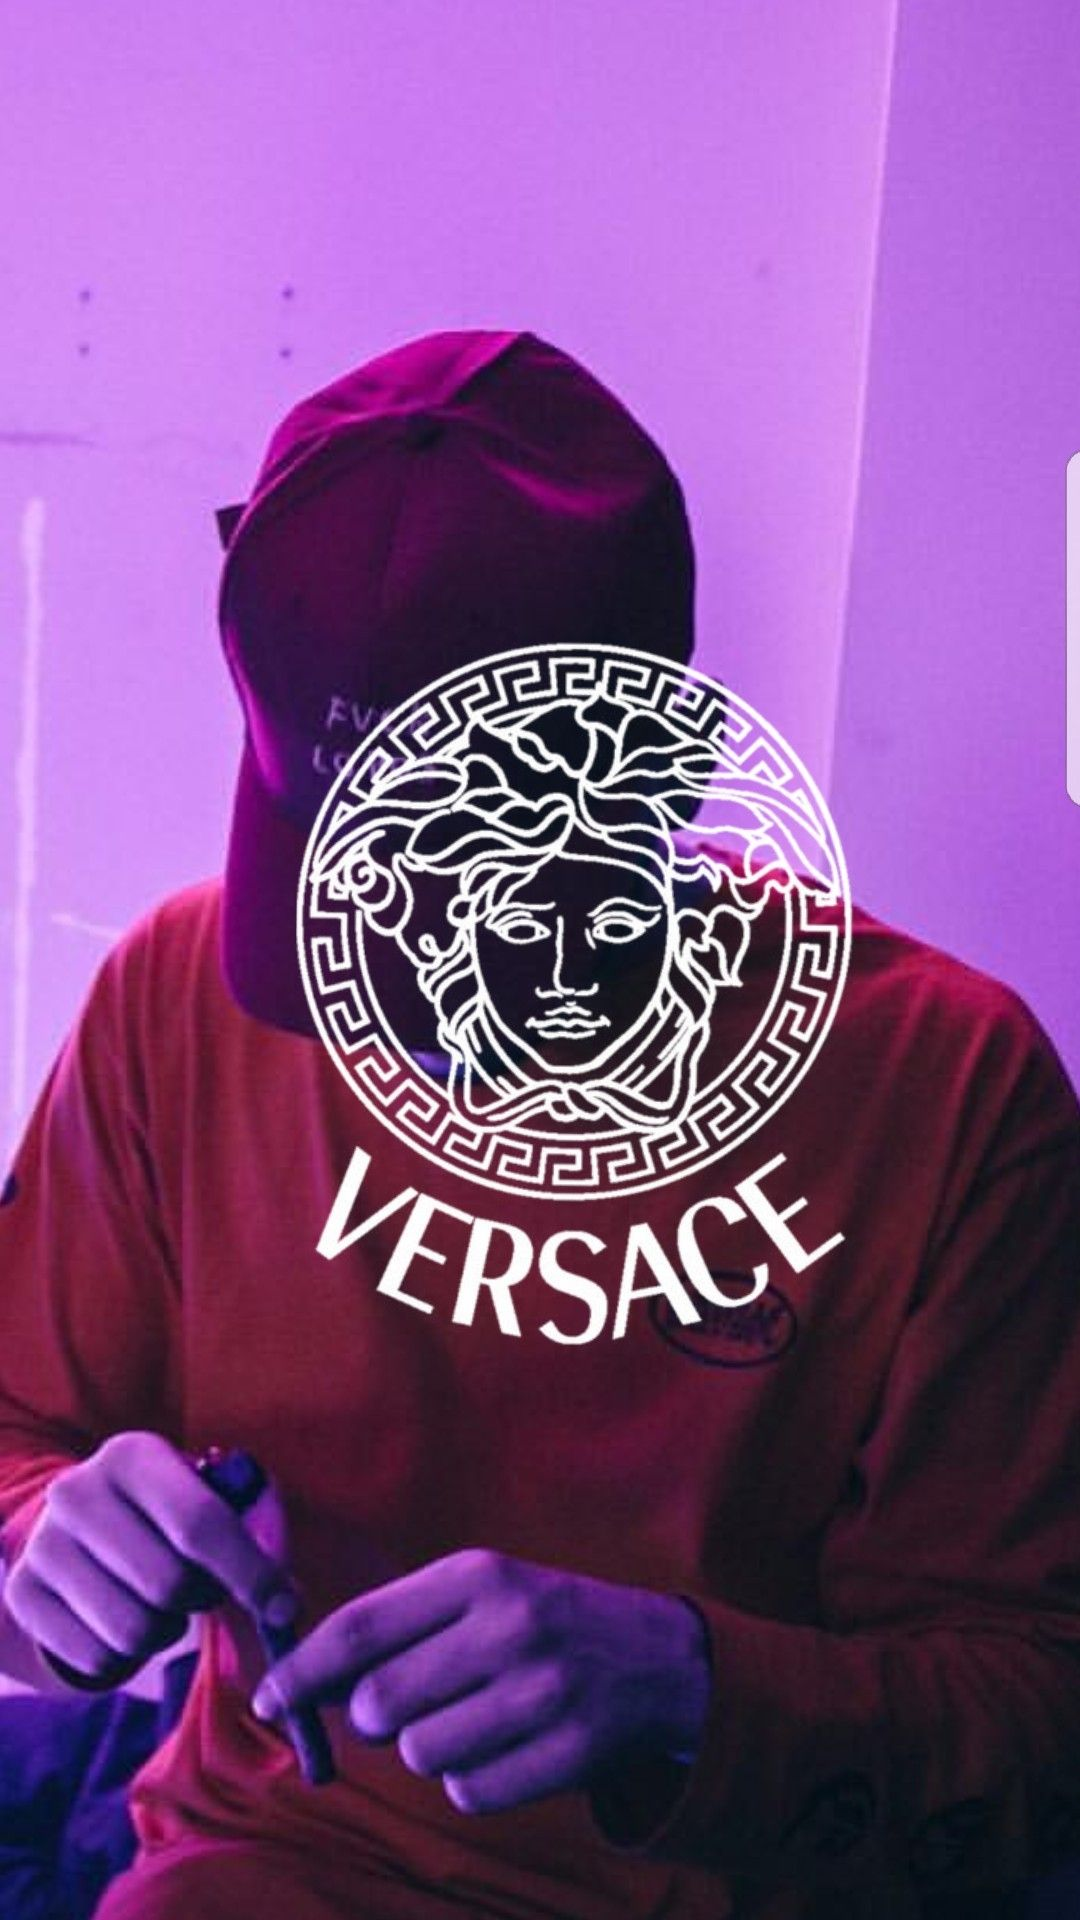 Fvck Loros Trap Versace Blunted Vato Tattoo Ideas In 2019